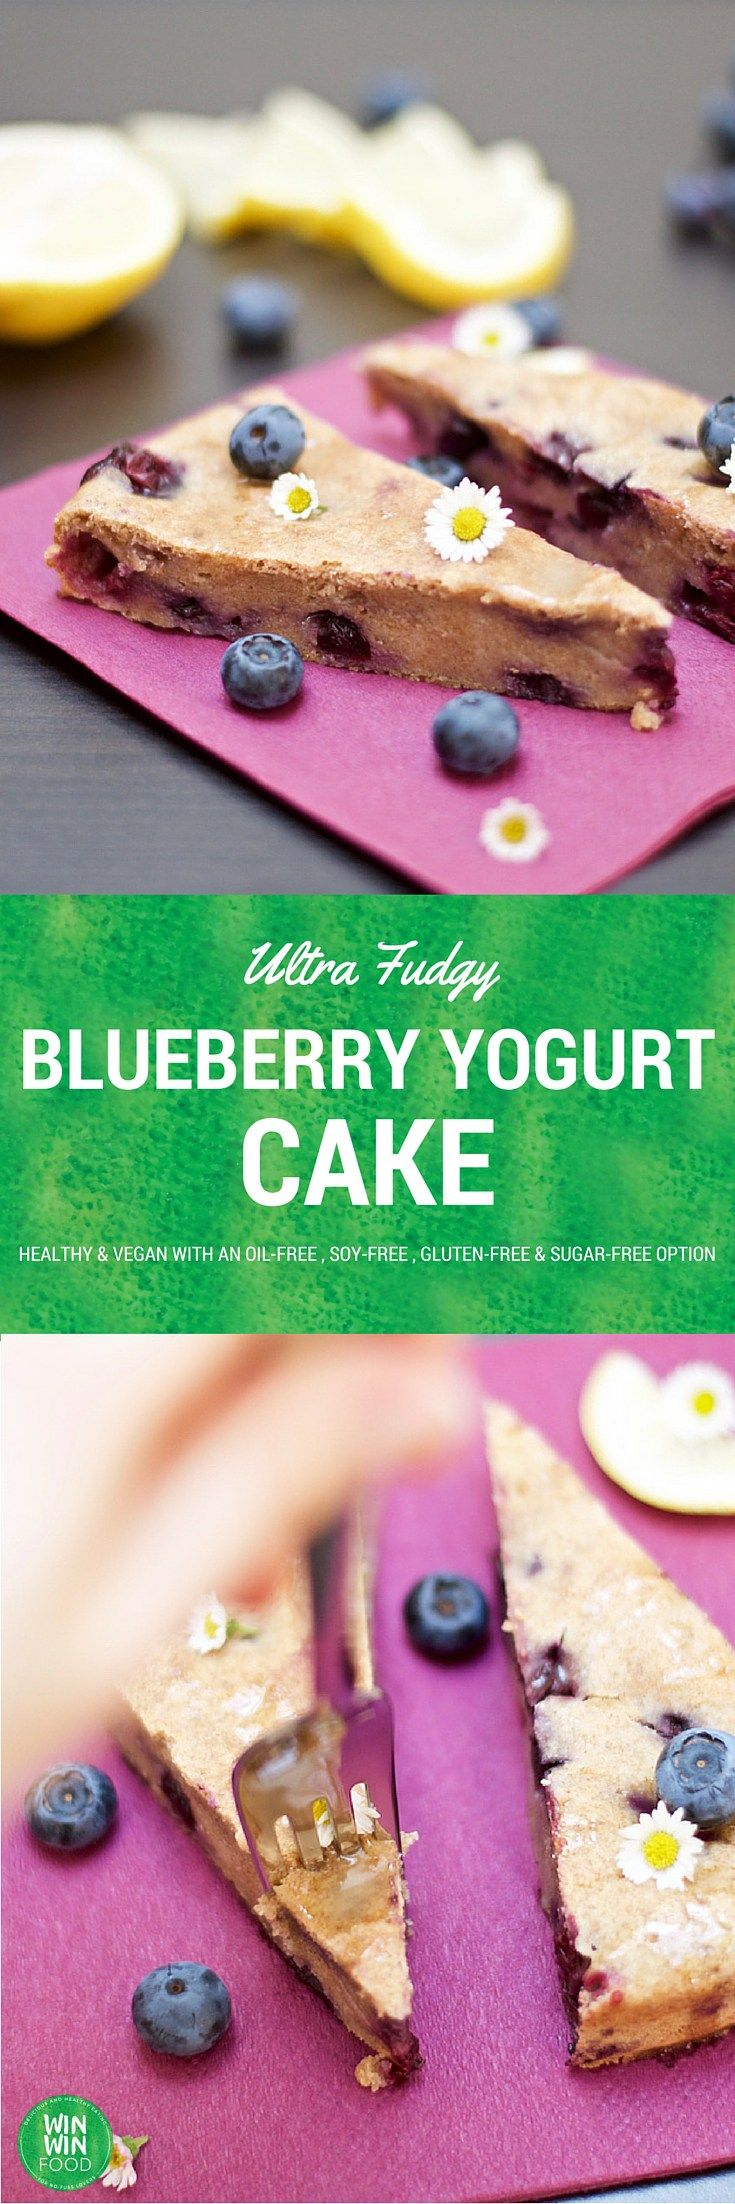 Blueberry Yogurt Cake   WIN-WINFOOD.com #healthy #vegan treat that has only 100 calories per slice and can be #glutenfree #oilfree and…